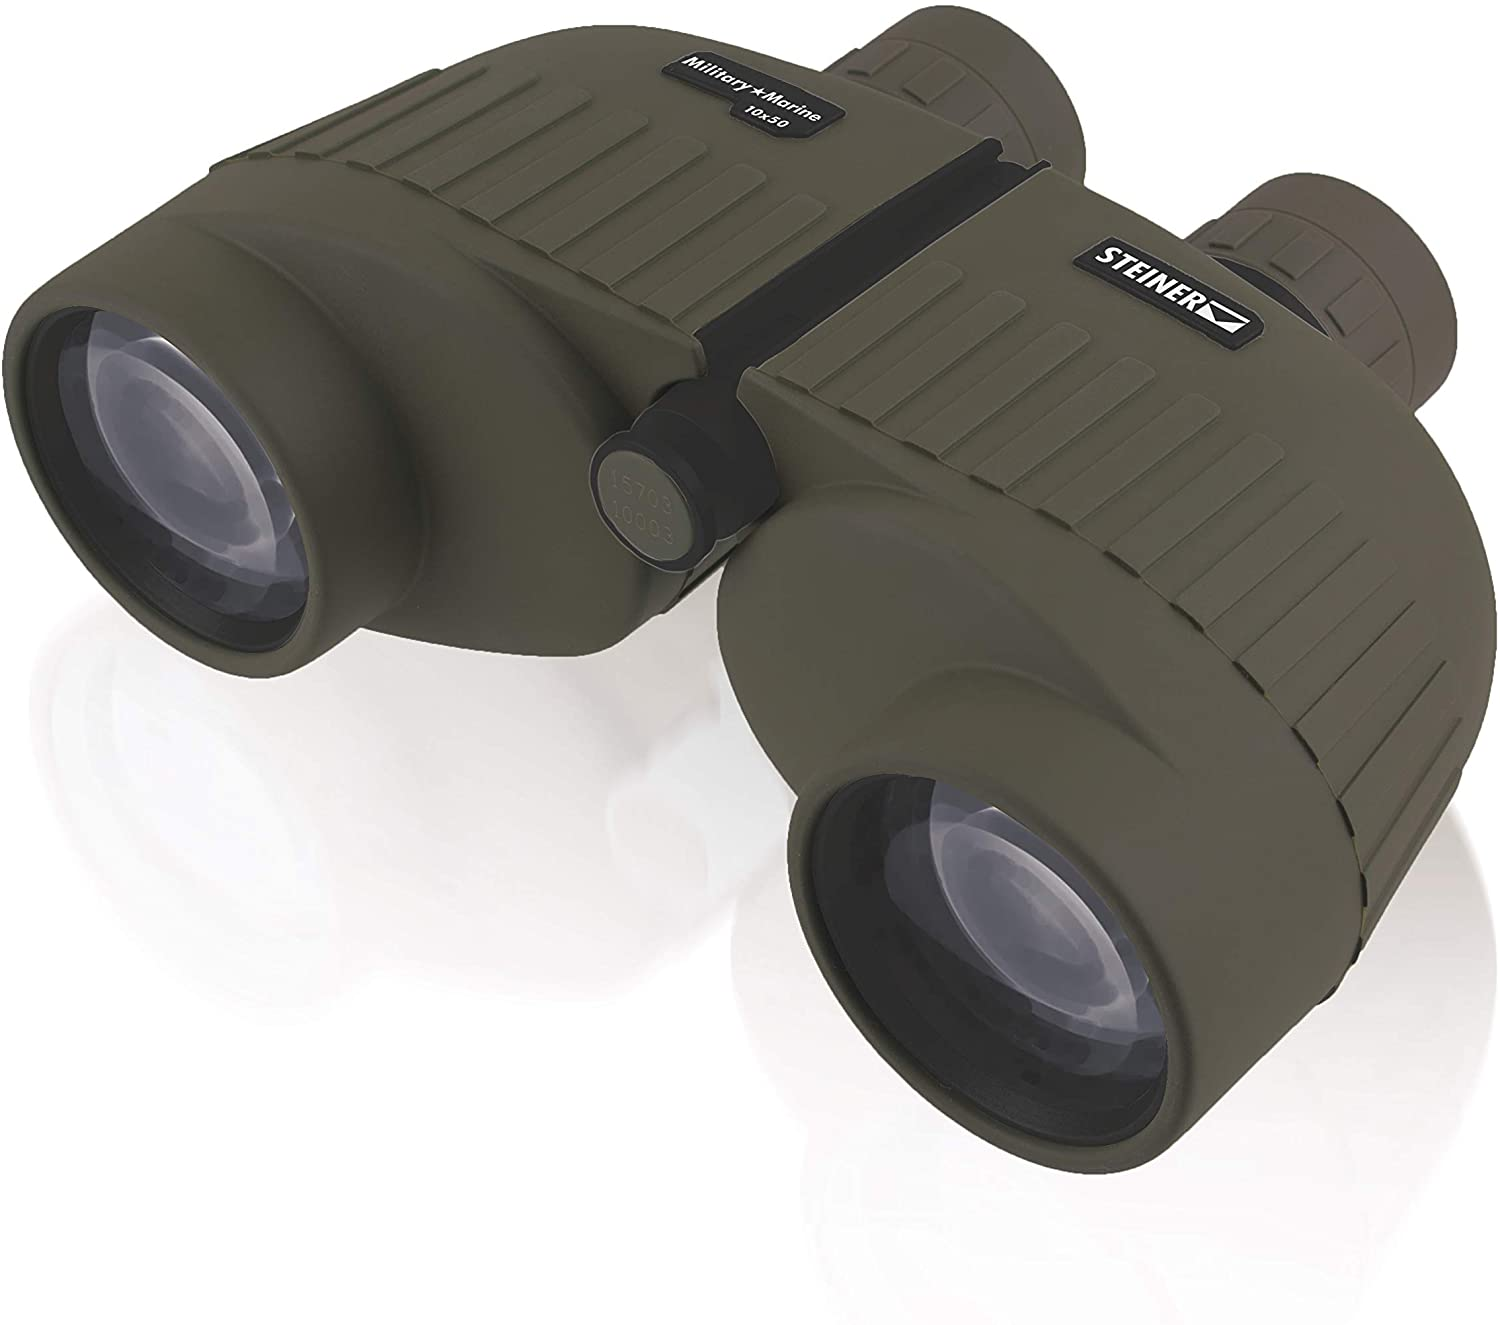 Steiner Military-Marine Series Binoculars, Lightweight Tactical Precision Optics for Any Situation, Waterproof, Green